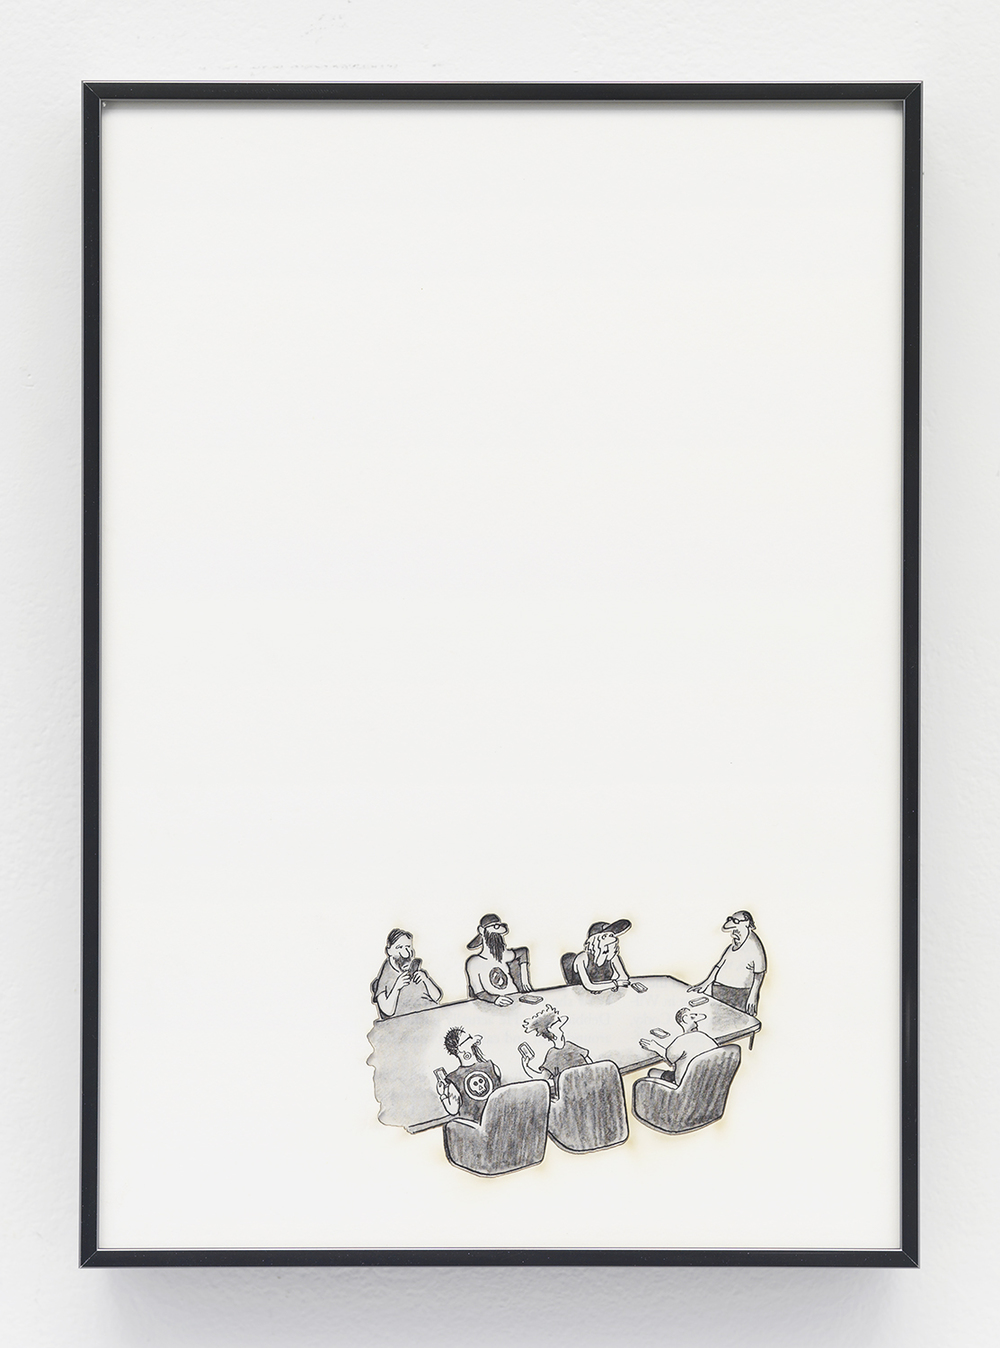 Artifact: Language Barrier (Gerard Ter Borch) 2014 Cotton and paper in artist frame 11 x 8 inches